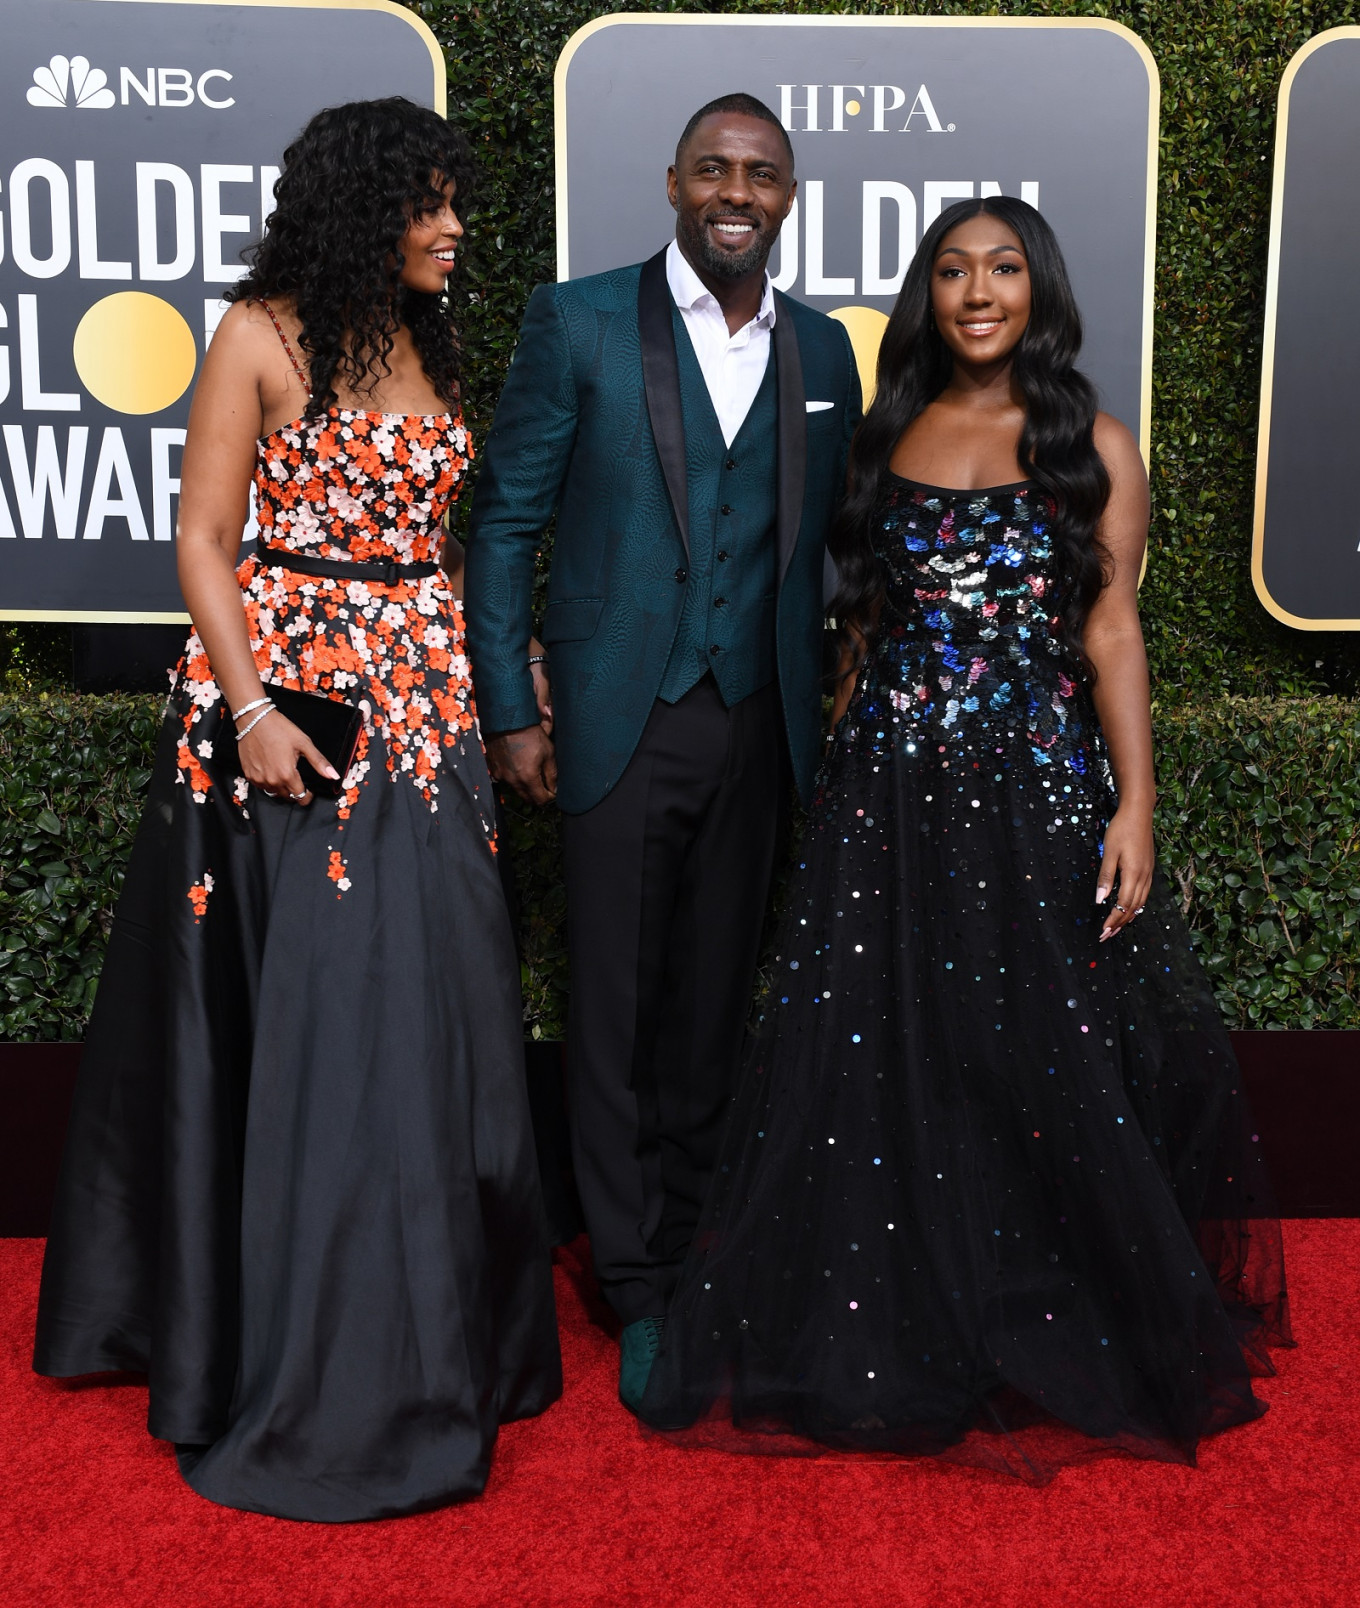 2019 Golden Globe Ambassador Isan Elba (R), actor Idris Elba and his fiance model Sabrina Dhowre arrive for the 76th annual Golden Globe Awards on Jan. 6, 2019, at the Beverly Hilton hotel in Beverly Hills, California